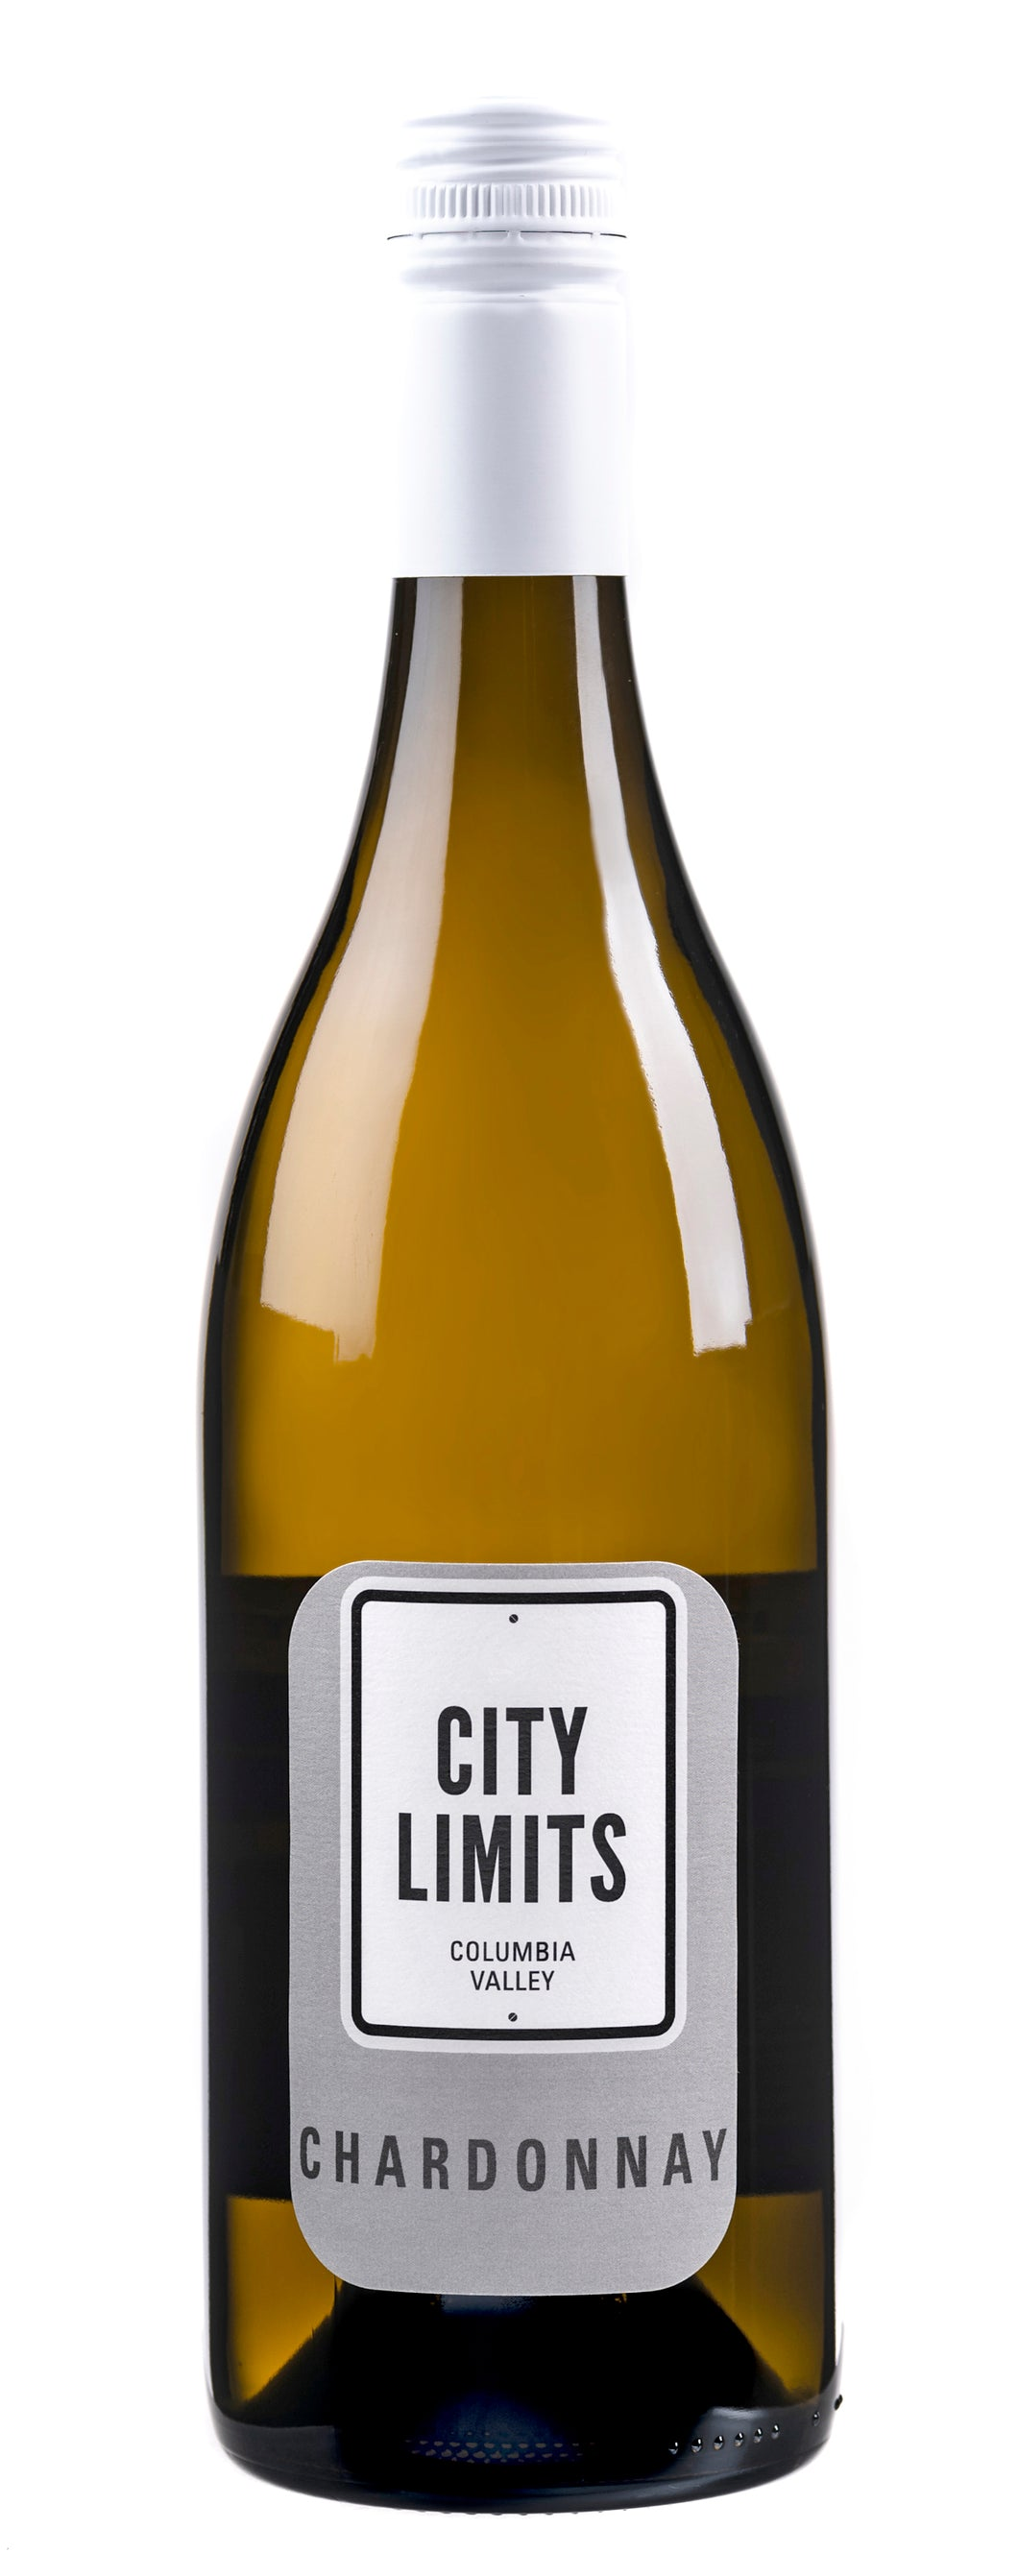 2018 City Limits Chardonnay